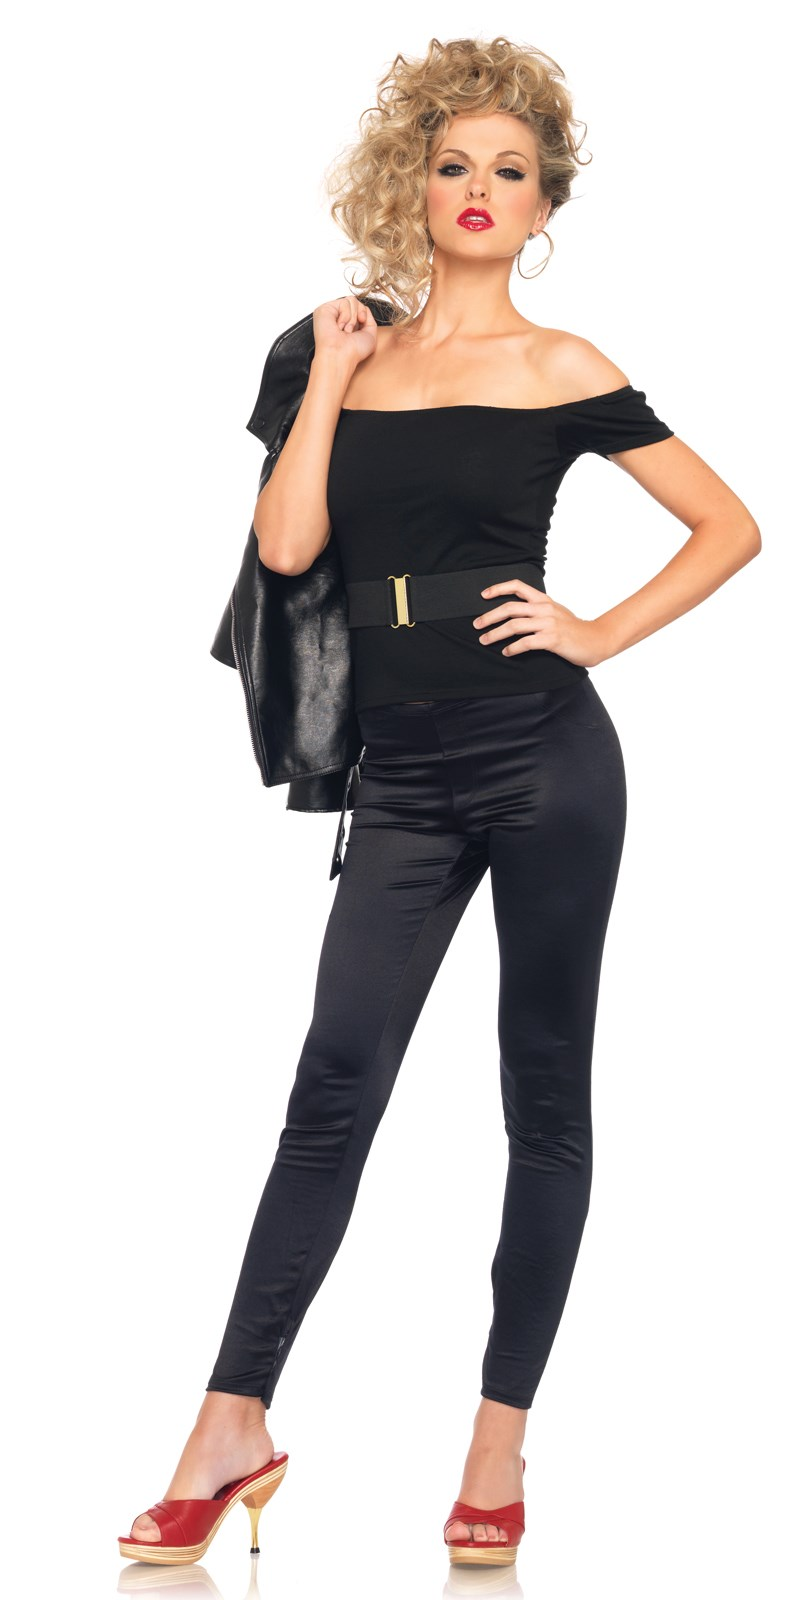 Grease Bad Sandy Outfit Adult Costume BuyCostumescom